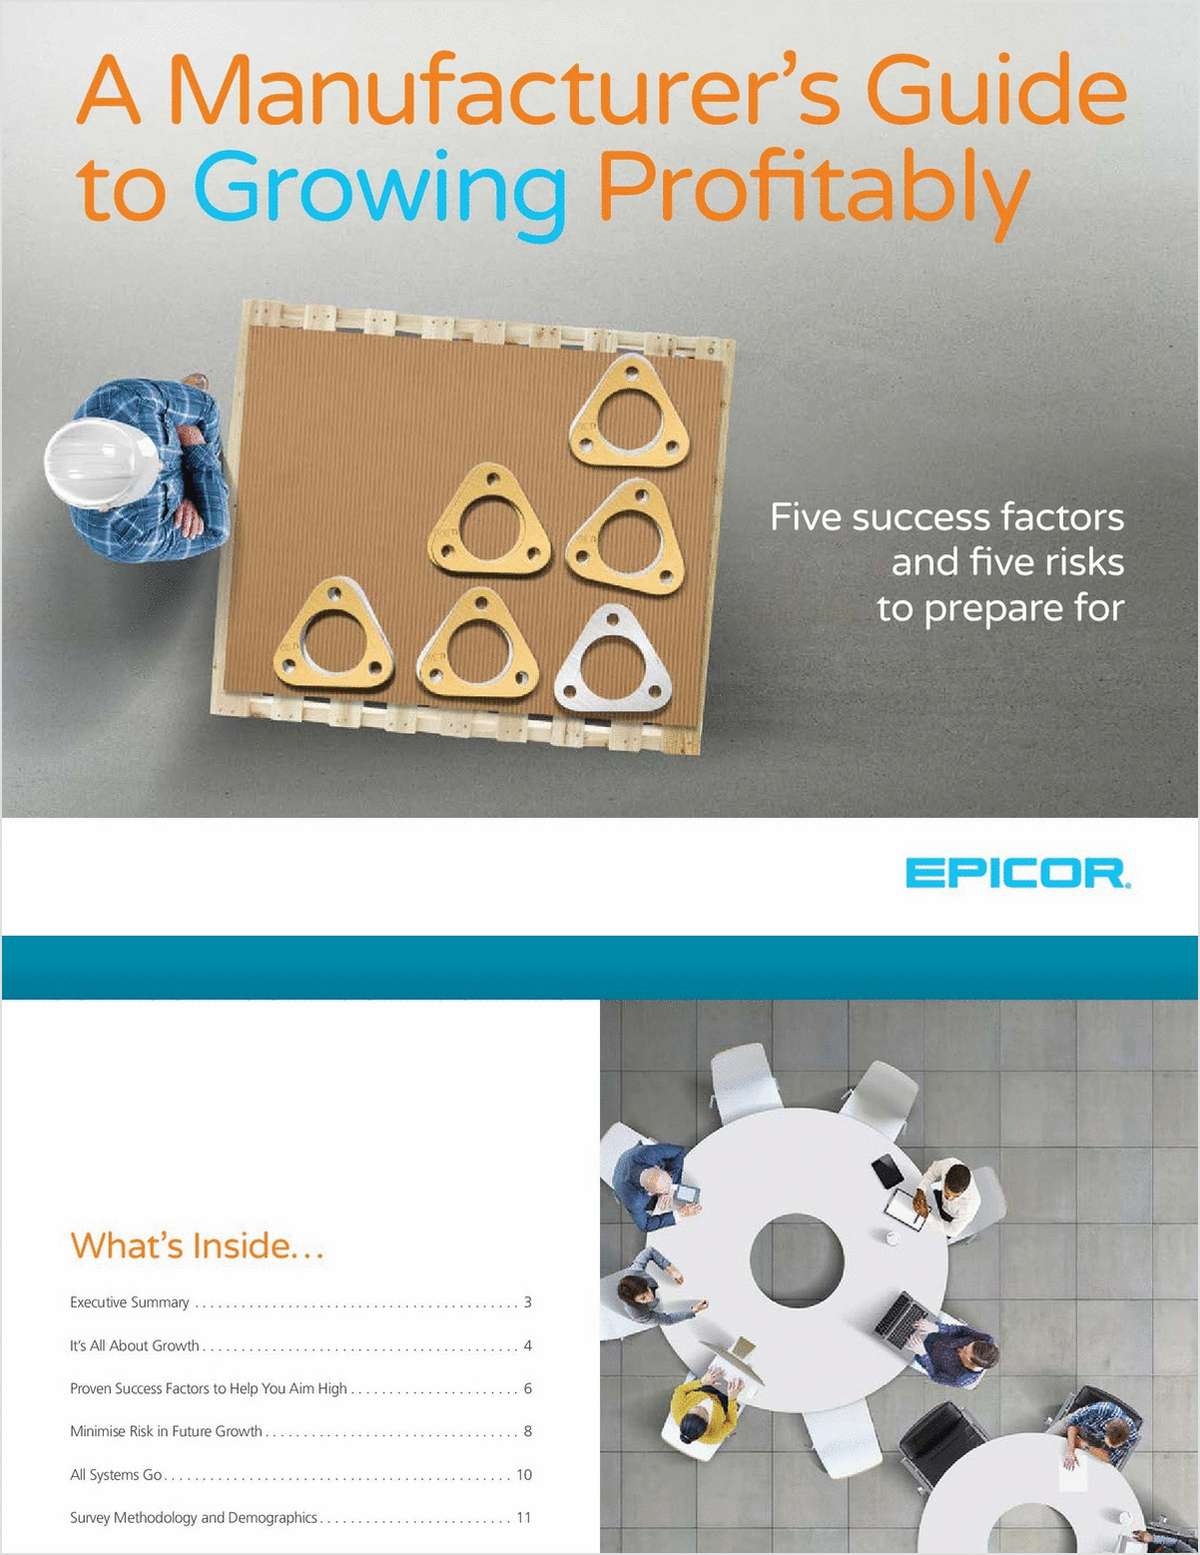 The Manufacturer's Guide to Growing Profitably